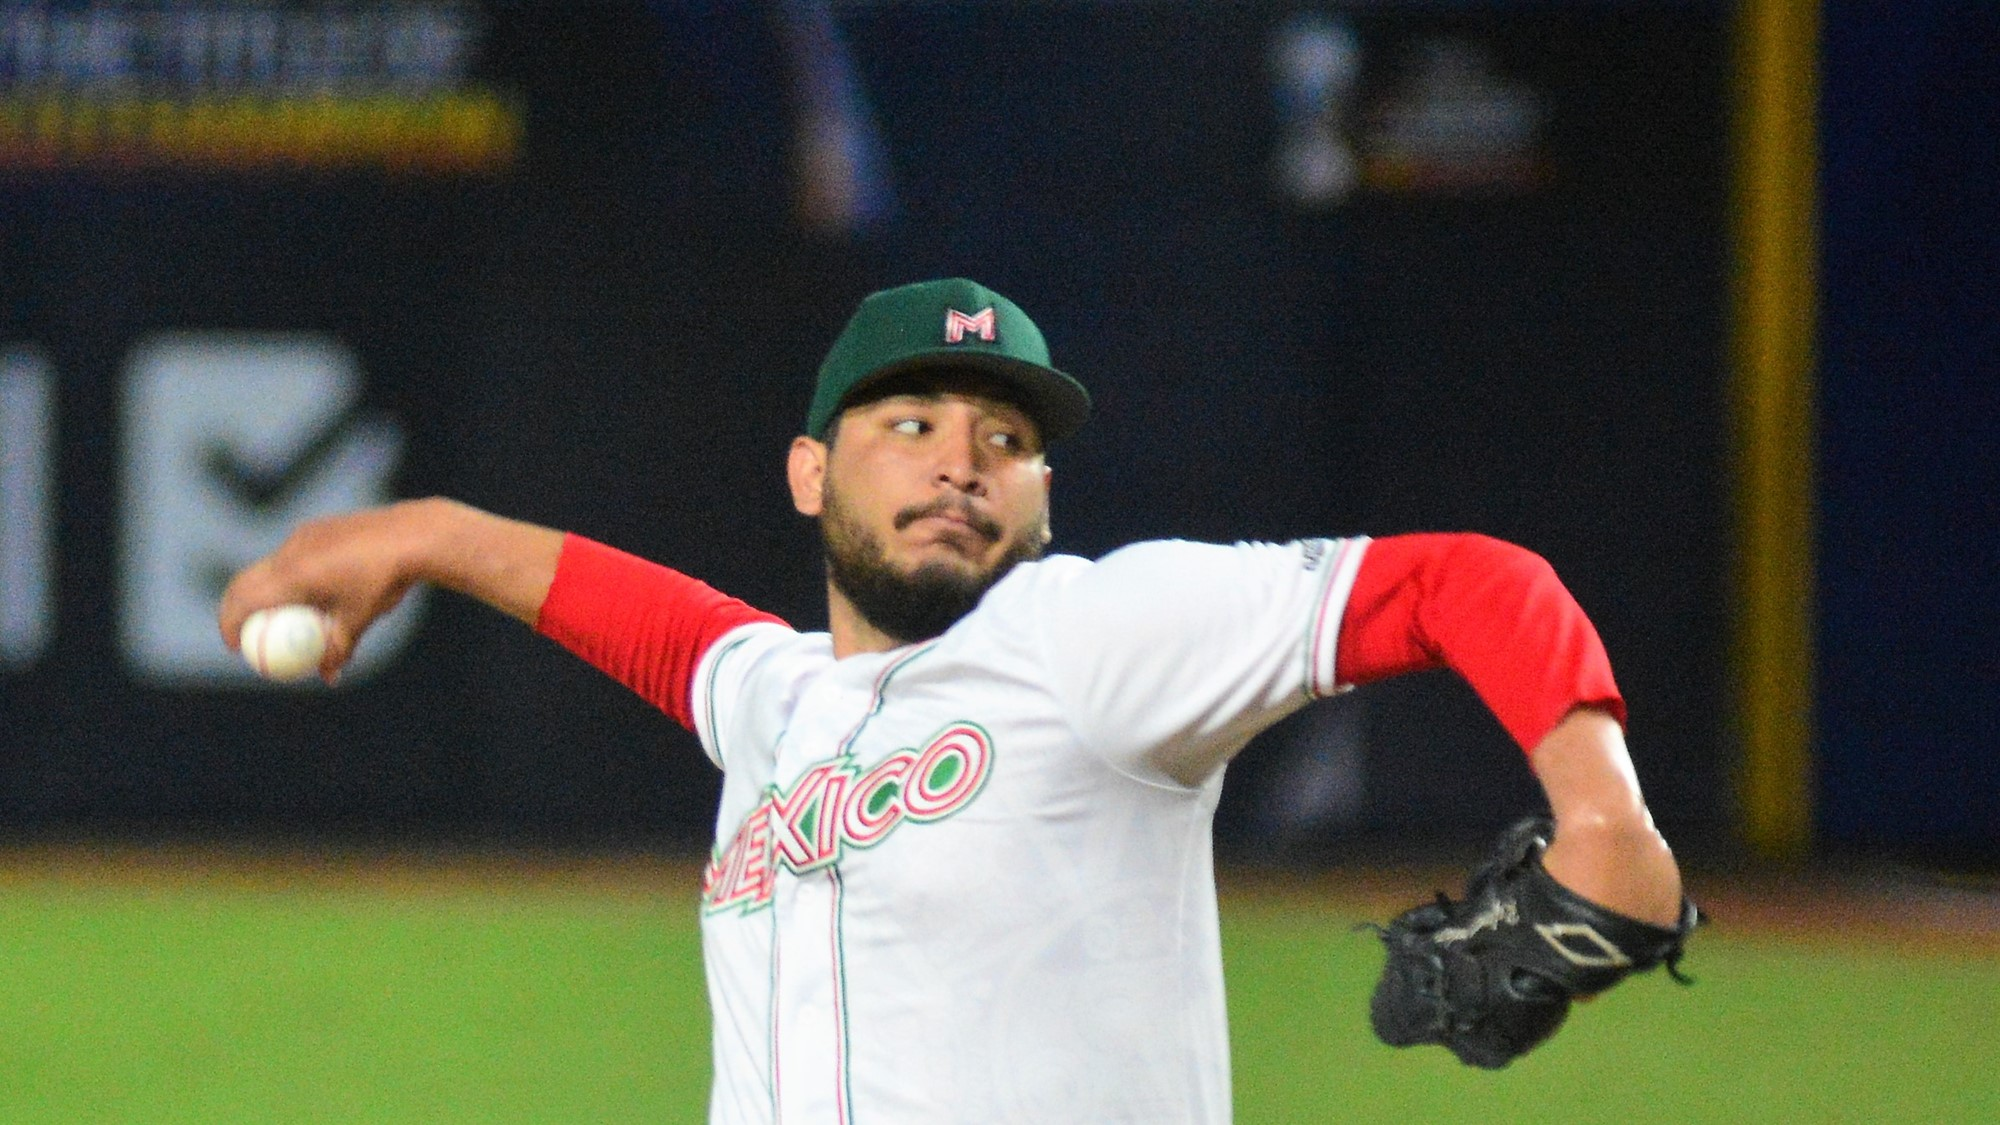 Rafaeil Ordaz escaped a bases loaded jam in the sixth. He was the fourth pitcher used by Mexico in the inning